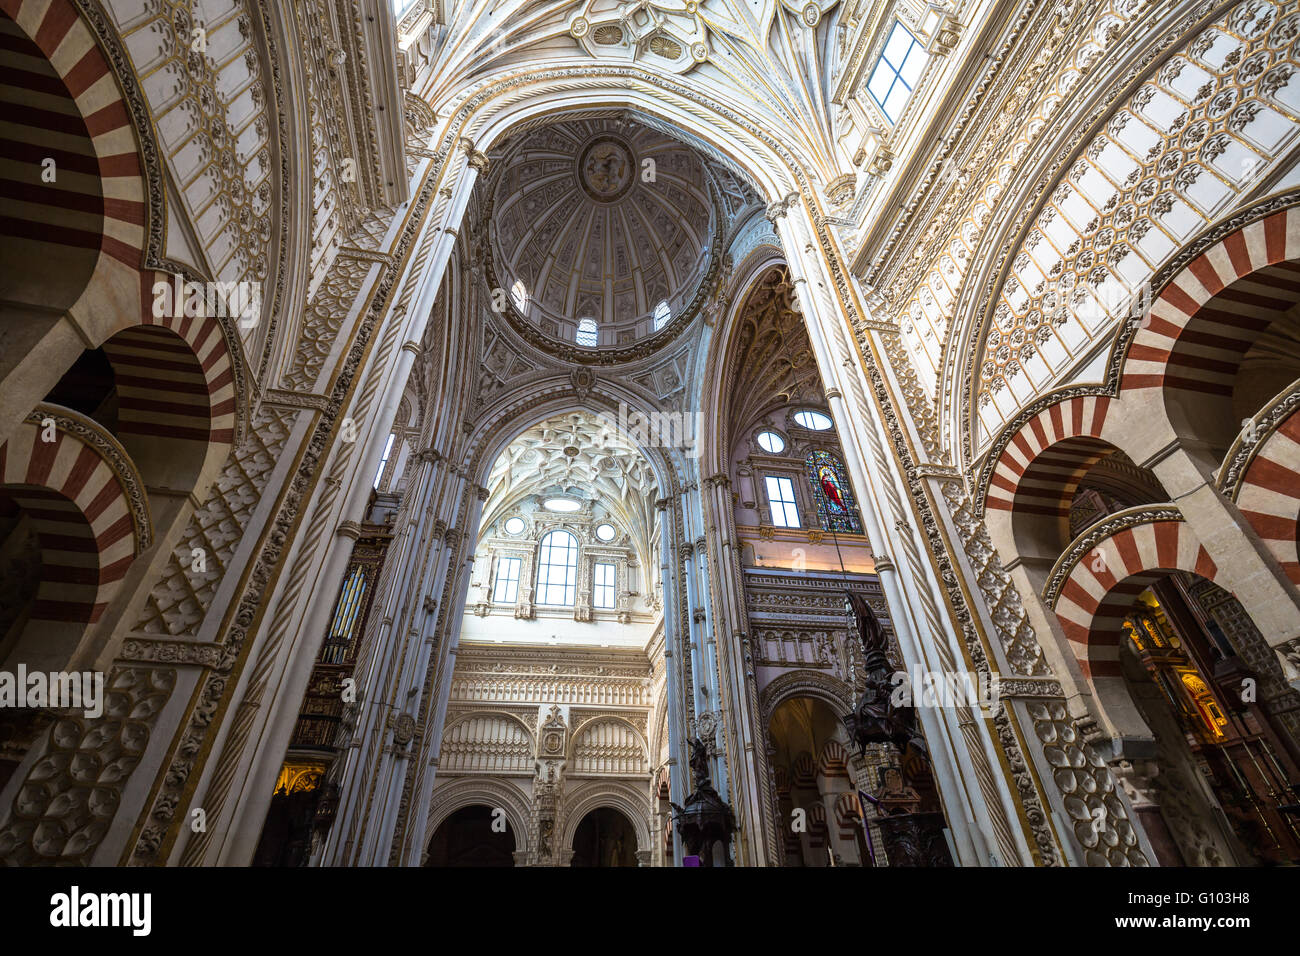 La mezquita cathedral in cordoba spain the cathedral was for Mezquita de cordoba interior